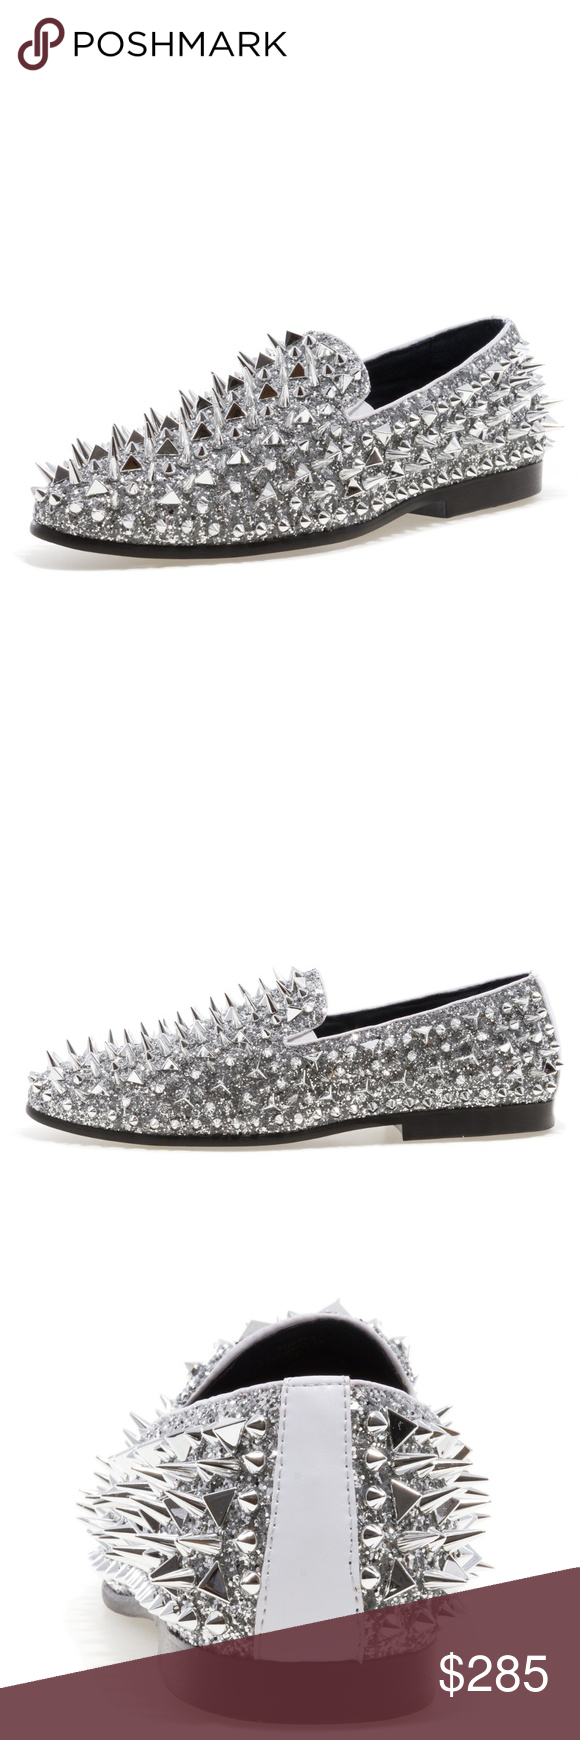 6492f436883 Jump NewYork Lord - Silver Spiked Loafers Material  Textile   Leather Upper  Sole  Rubber